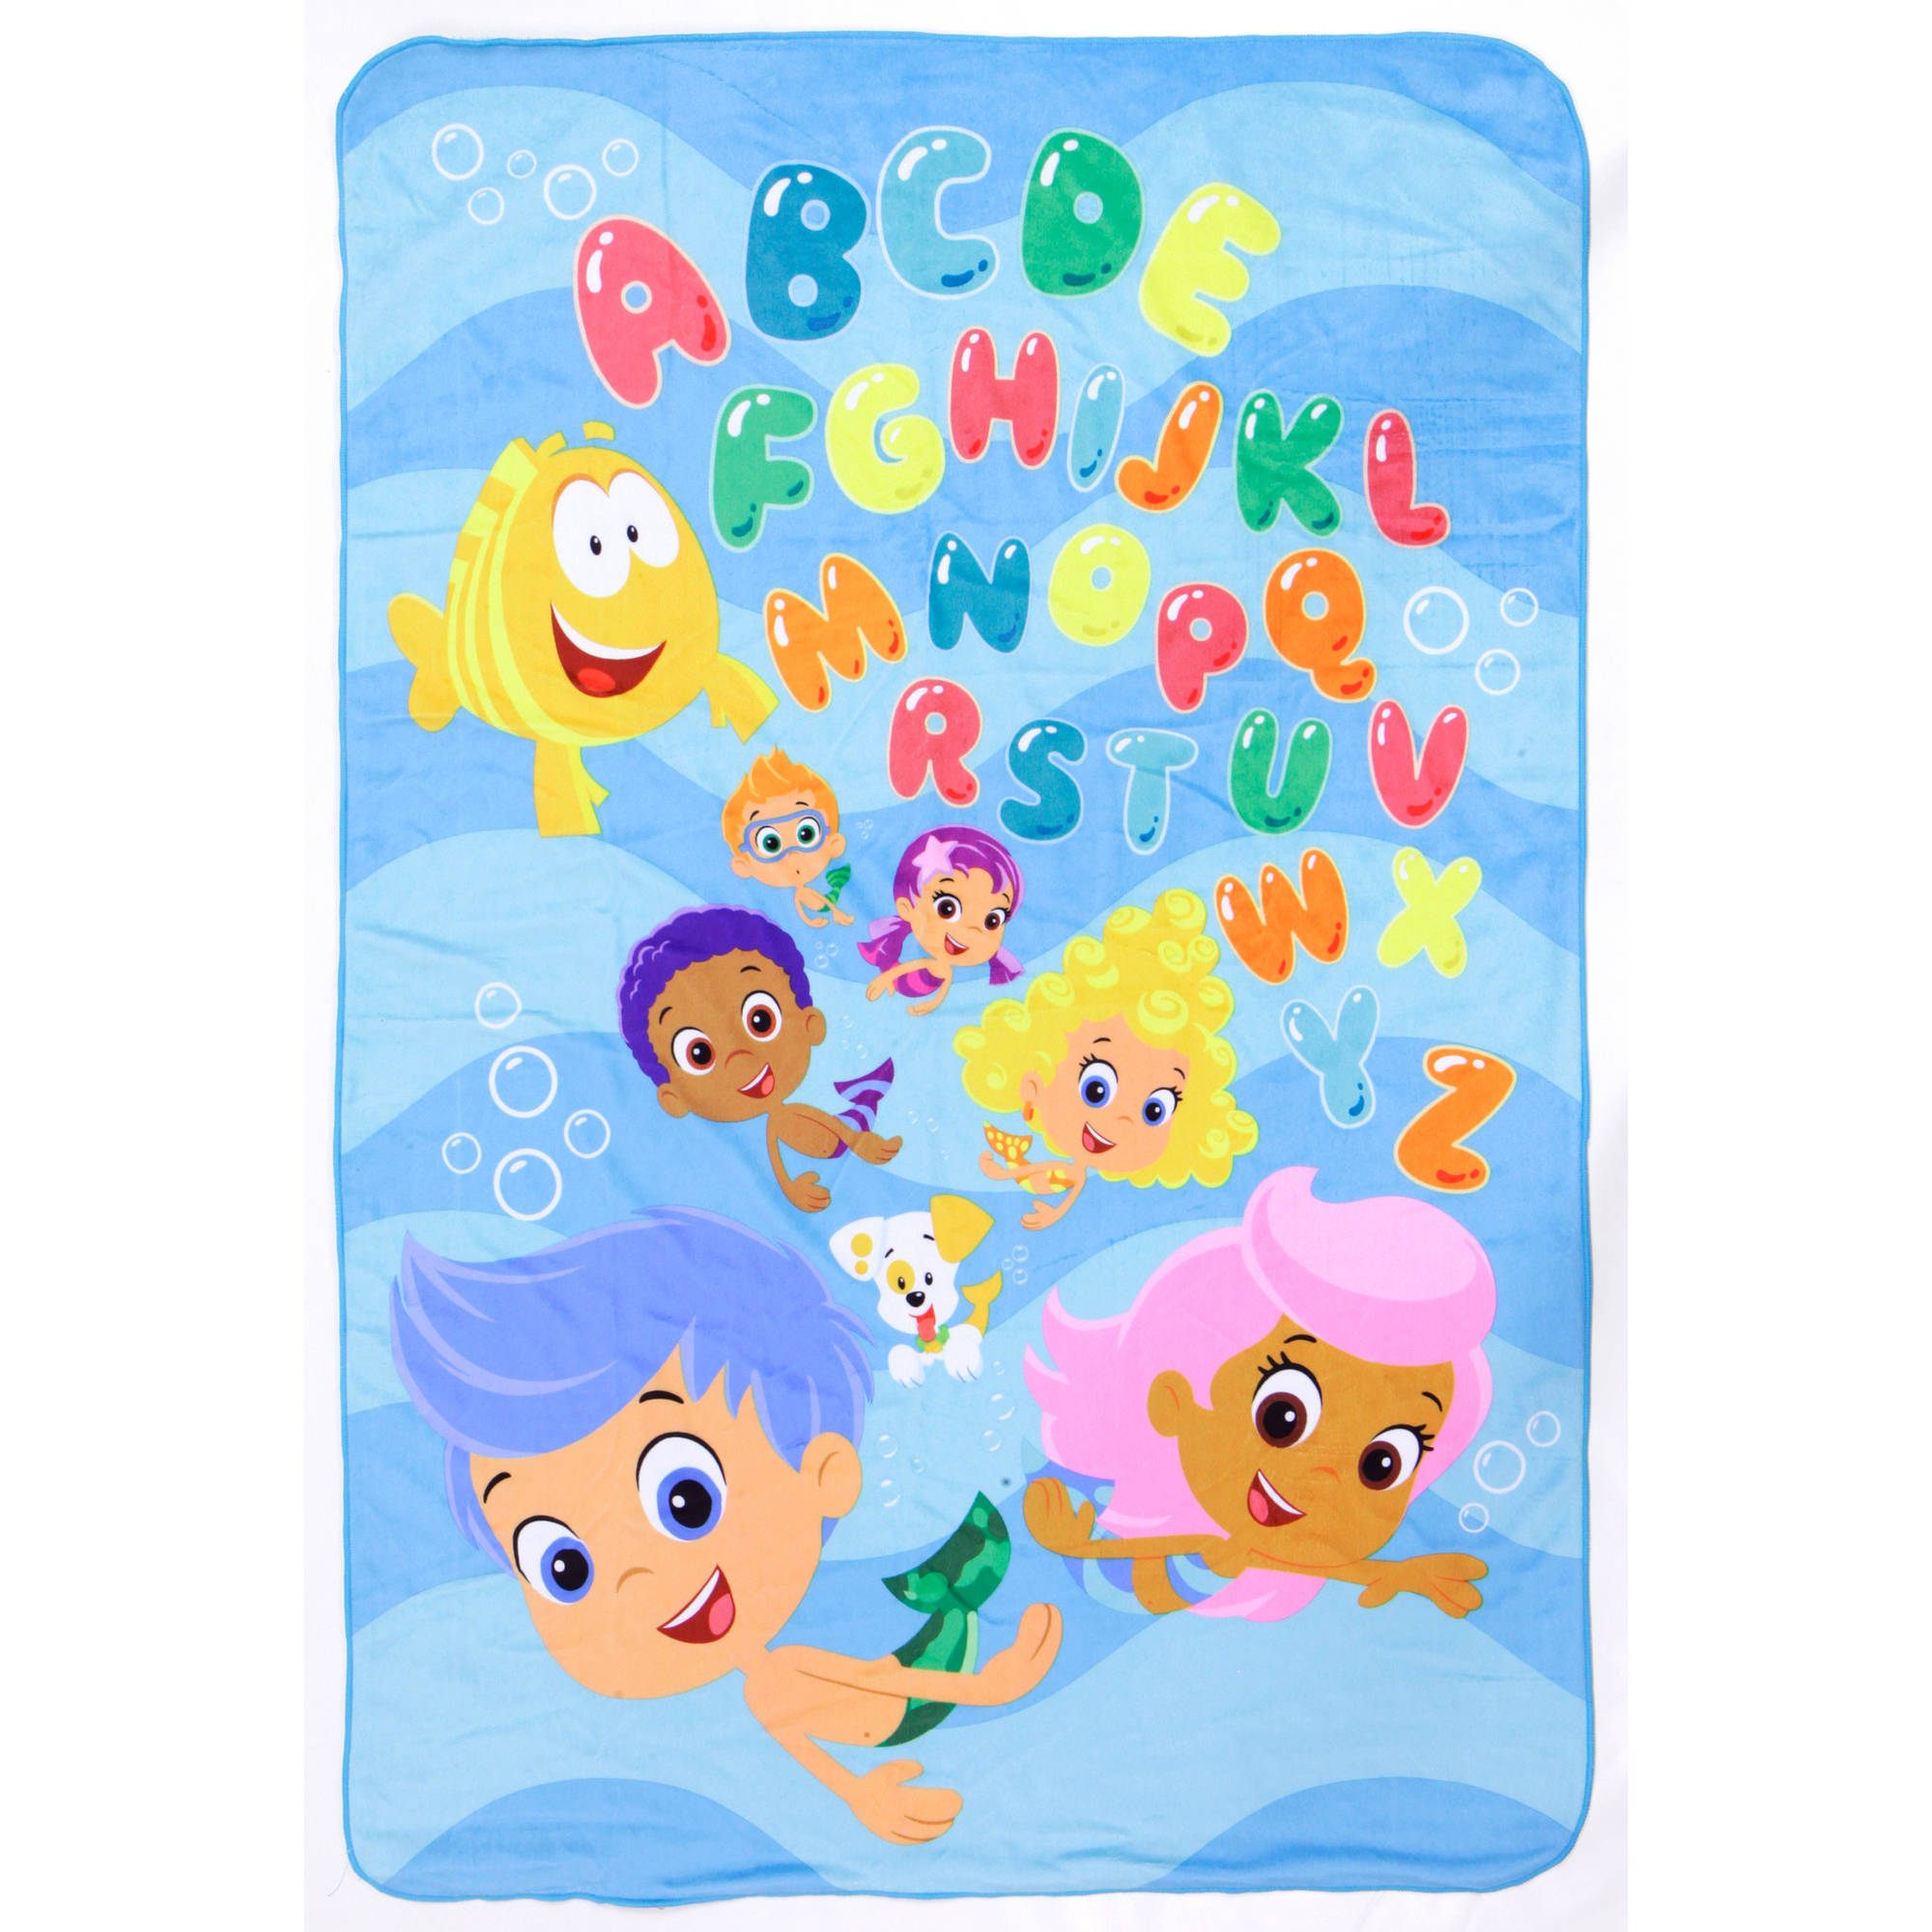 Bubble Guppies Toddler Bed Set With Bonu   Walmart.com